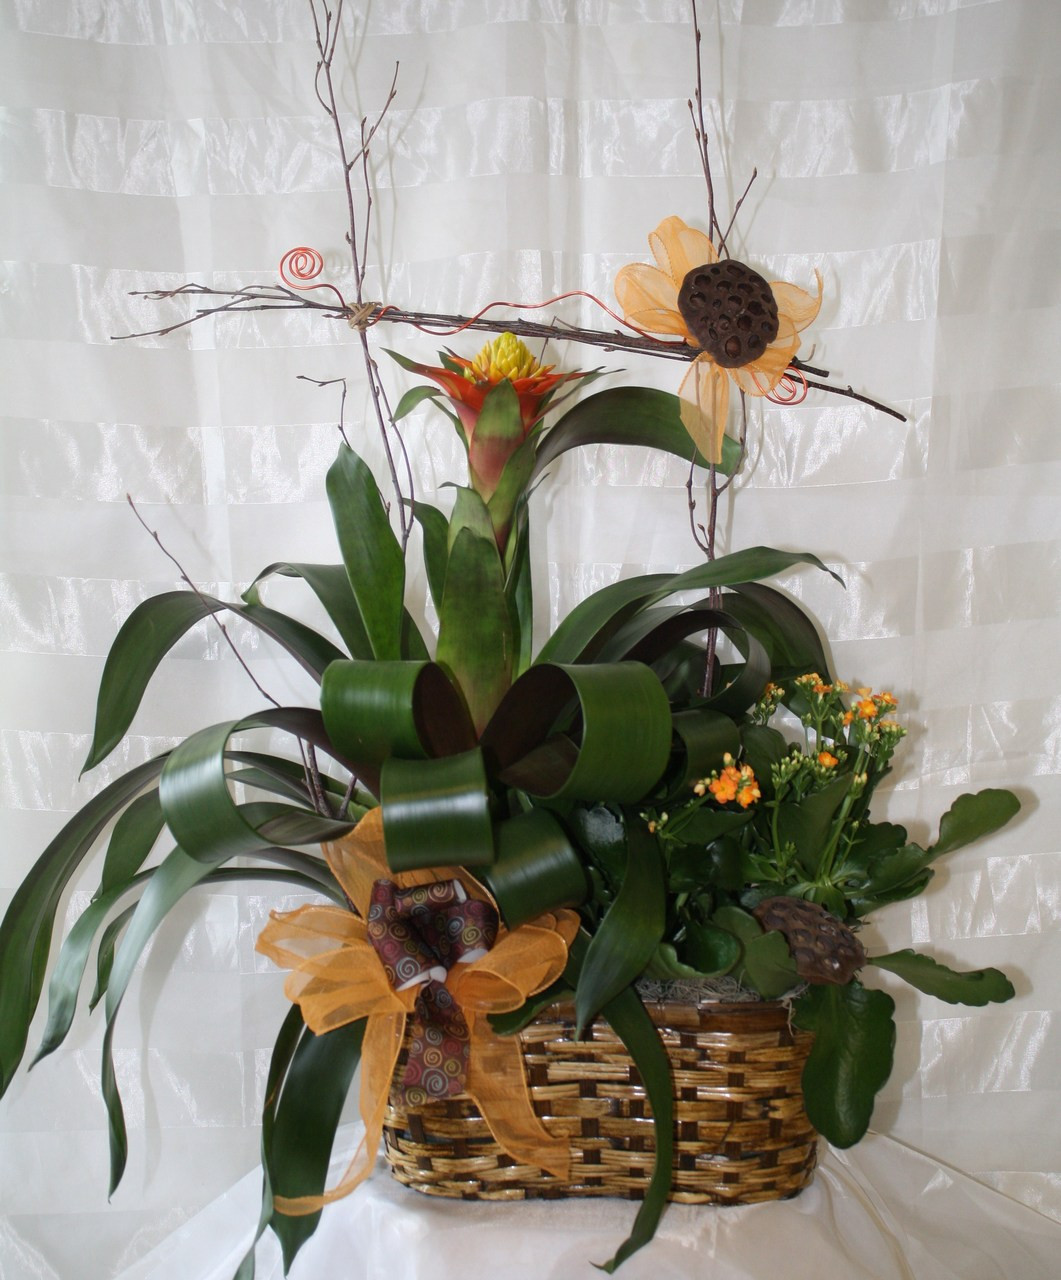 Impressive Double Plant Basket With Blooming Plants By A